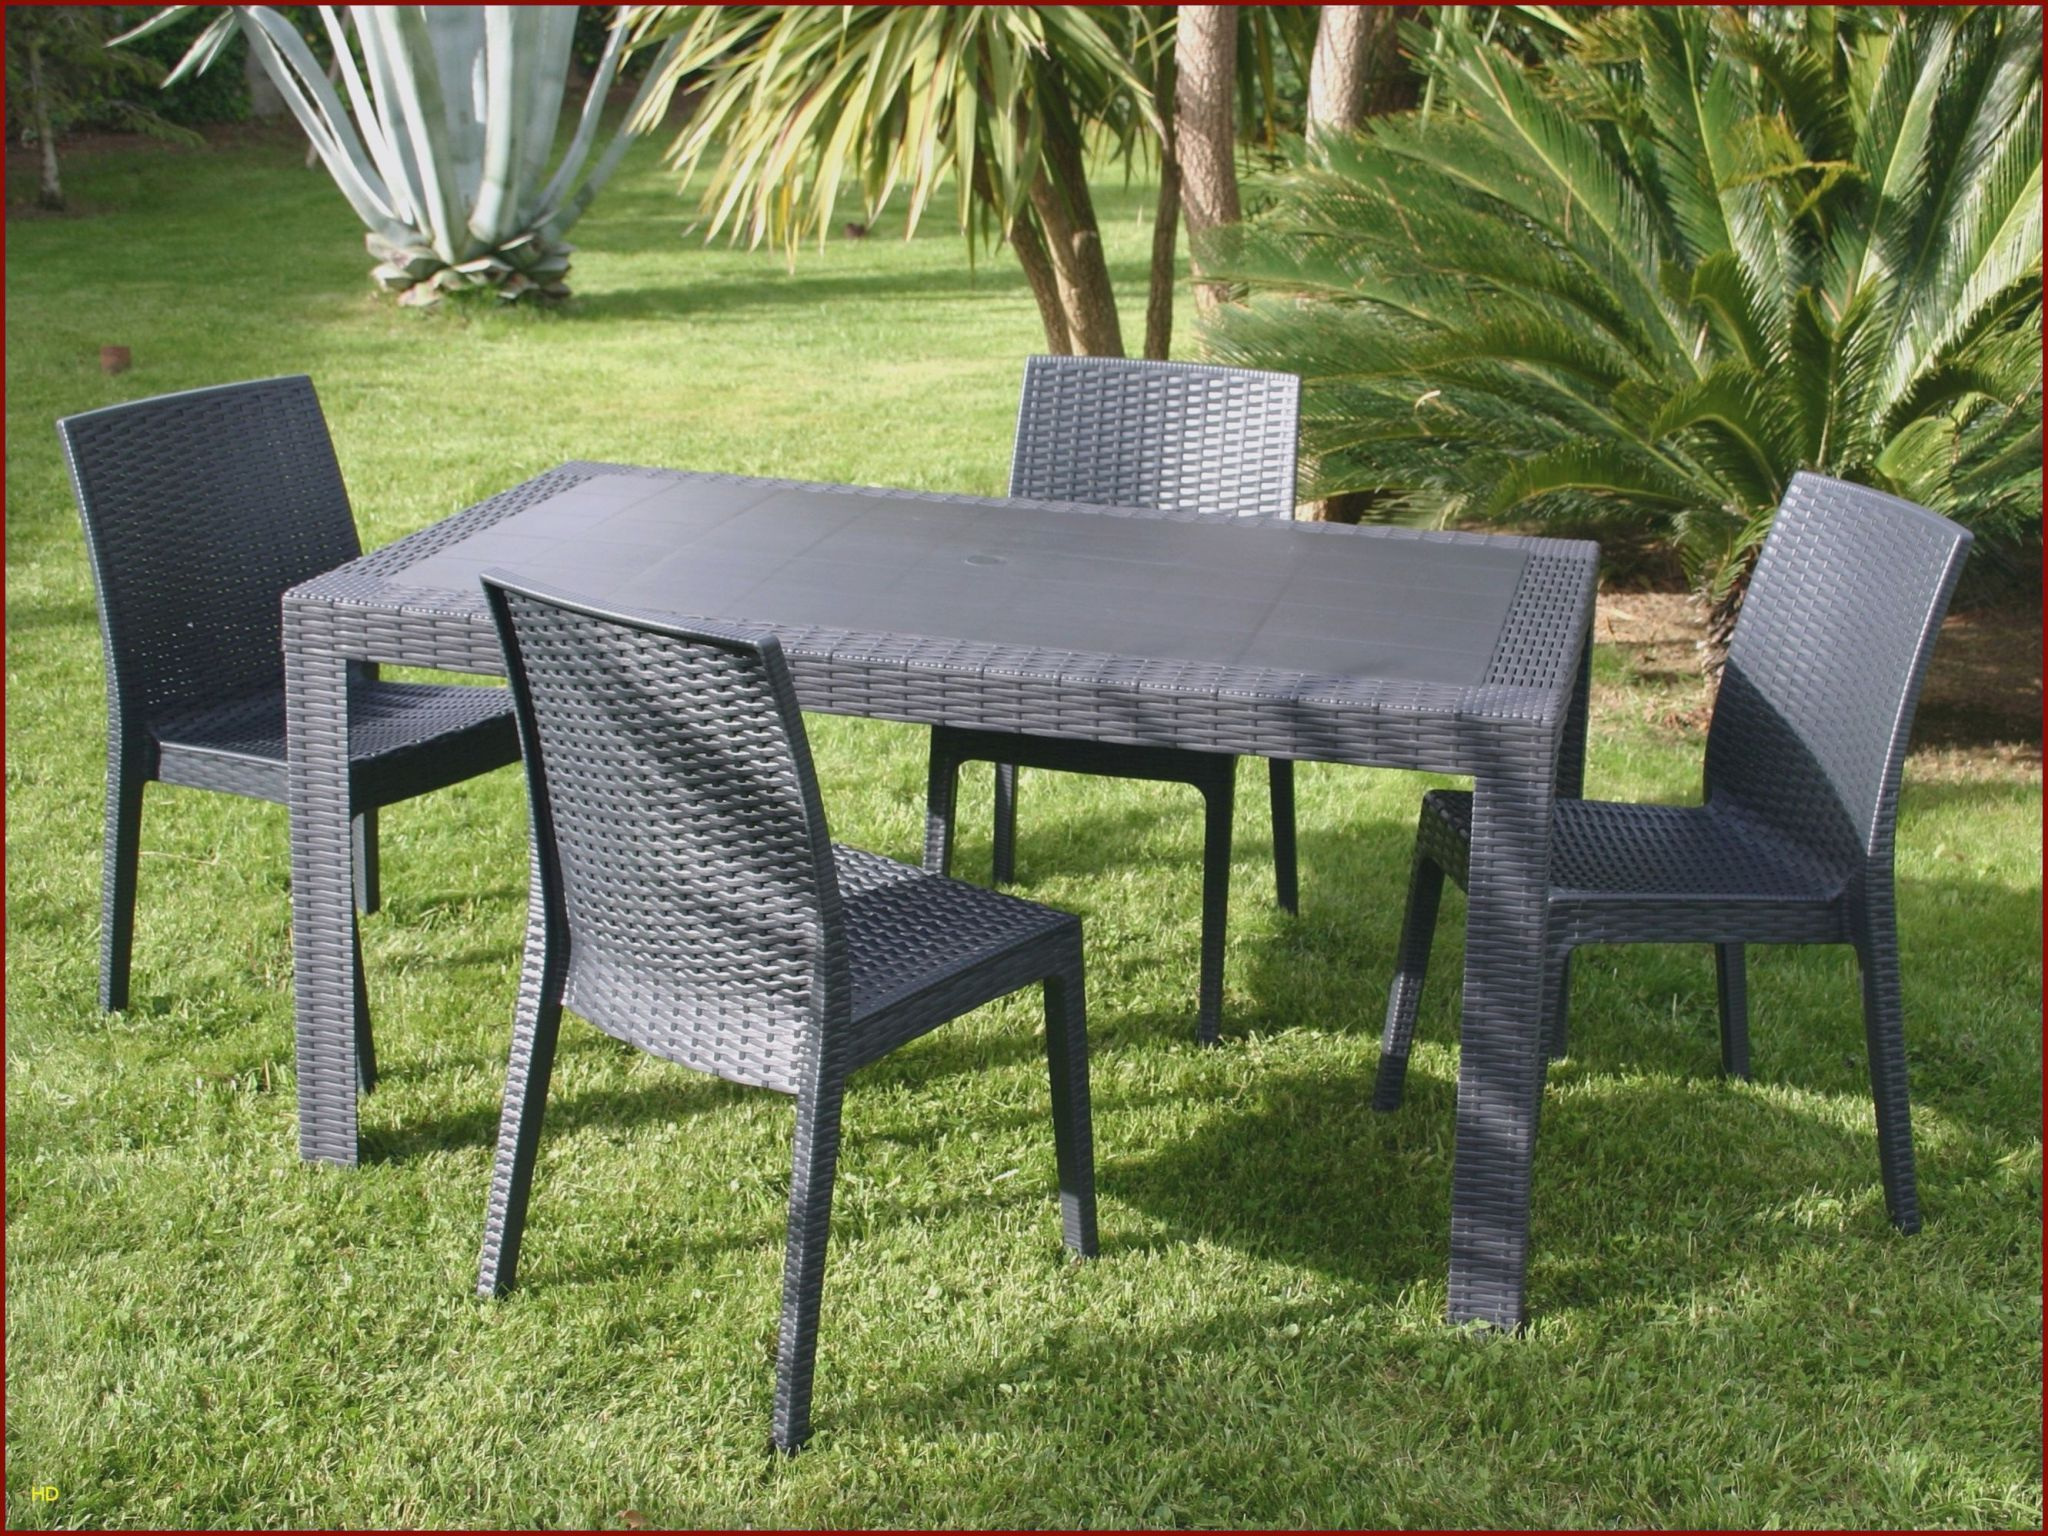 Table Bistrot 4 Personnes Élégant Chaises Luxe Chaise Ice 0d Table Jardin Resine Lovely Of 24 Inspirant Table Bistrot 4 Personnes